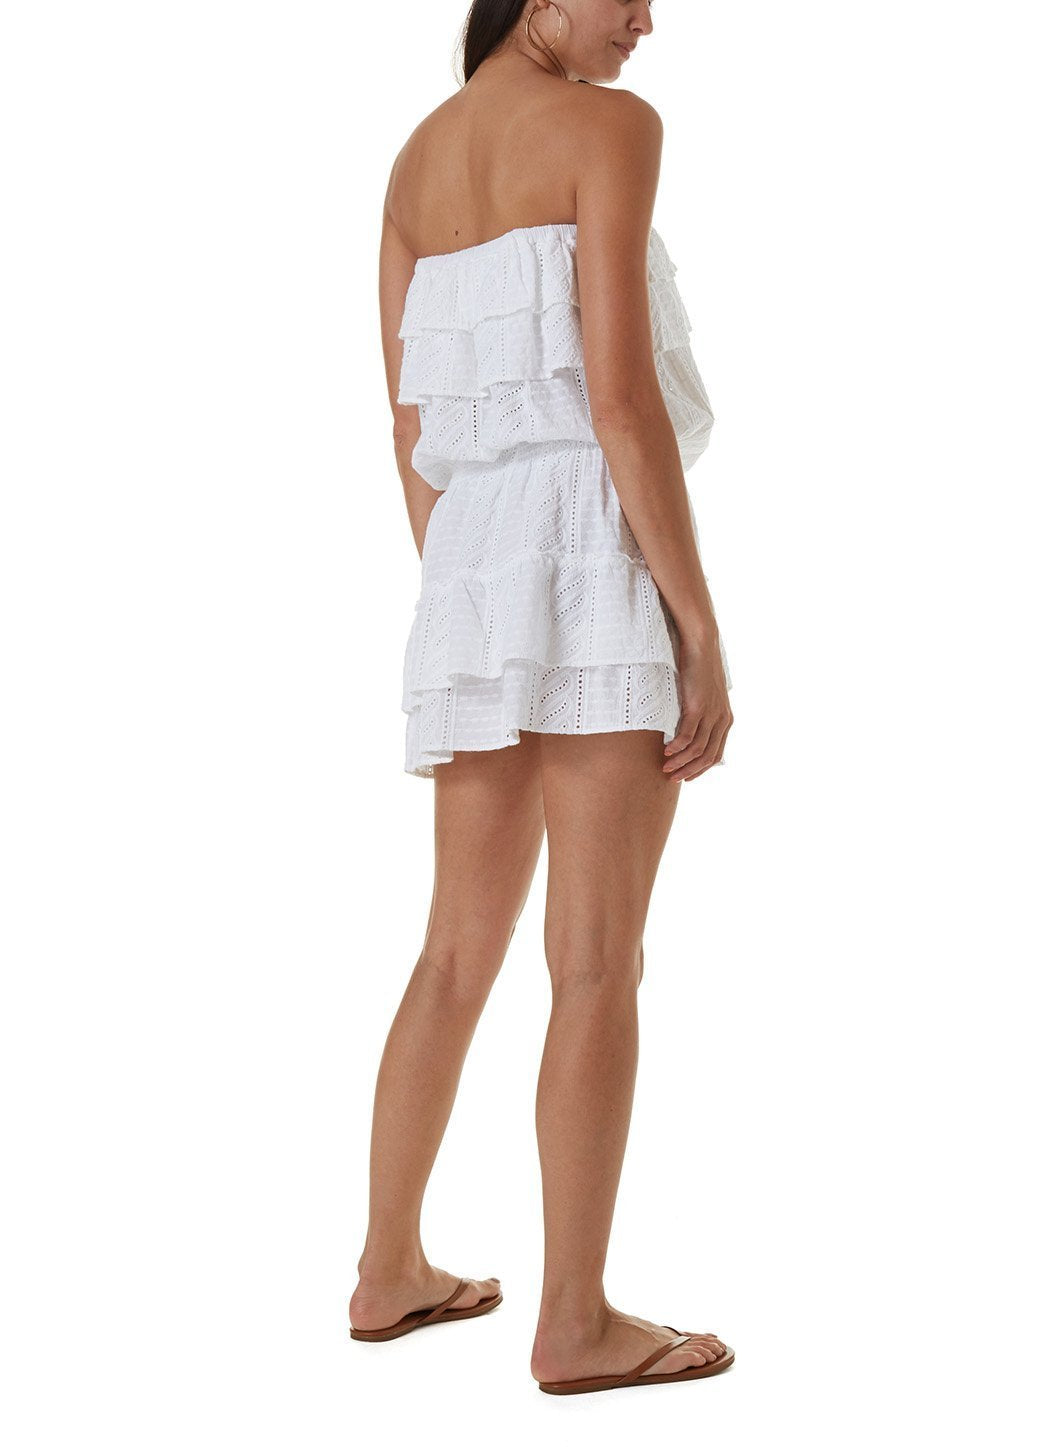 mia white short dress